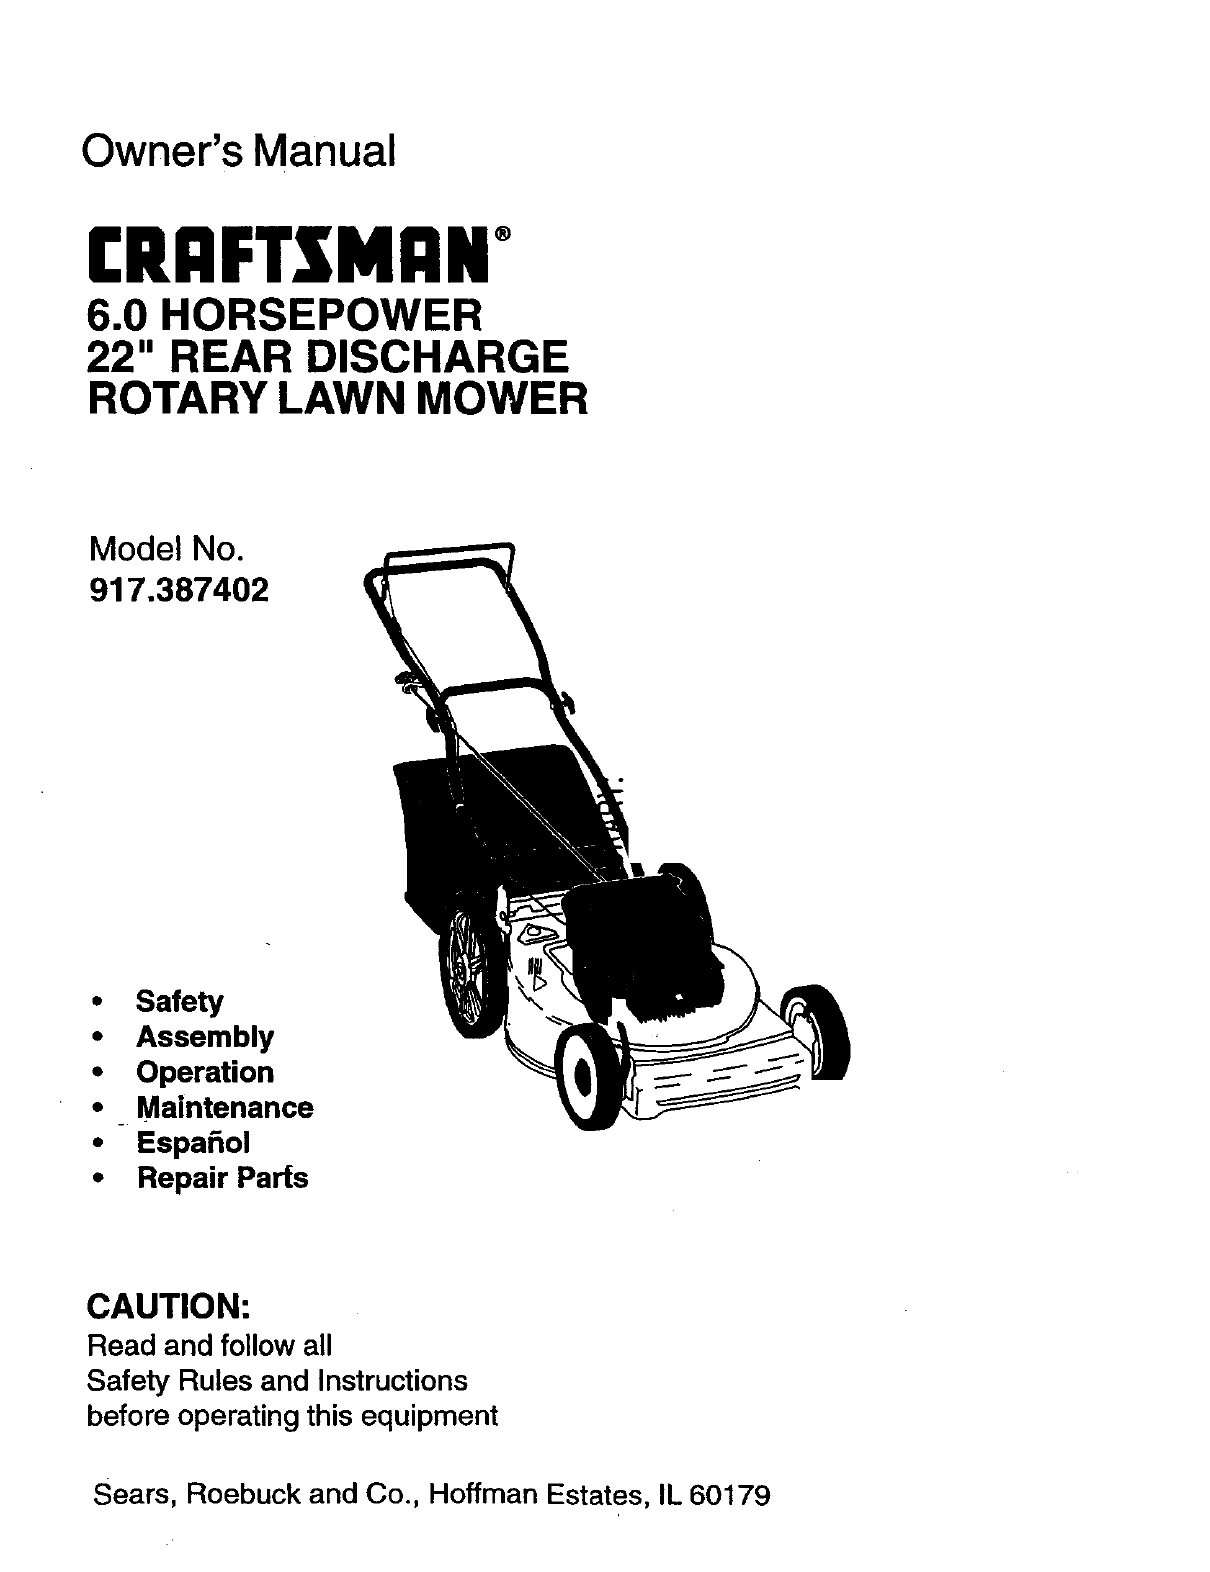 craftsman lawn mower 917 387402 user guide manualsonline com rh tv manualsonline com craftsman owners manual 13953661srta craftsman owners manual 13953661srta